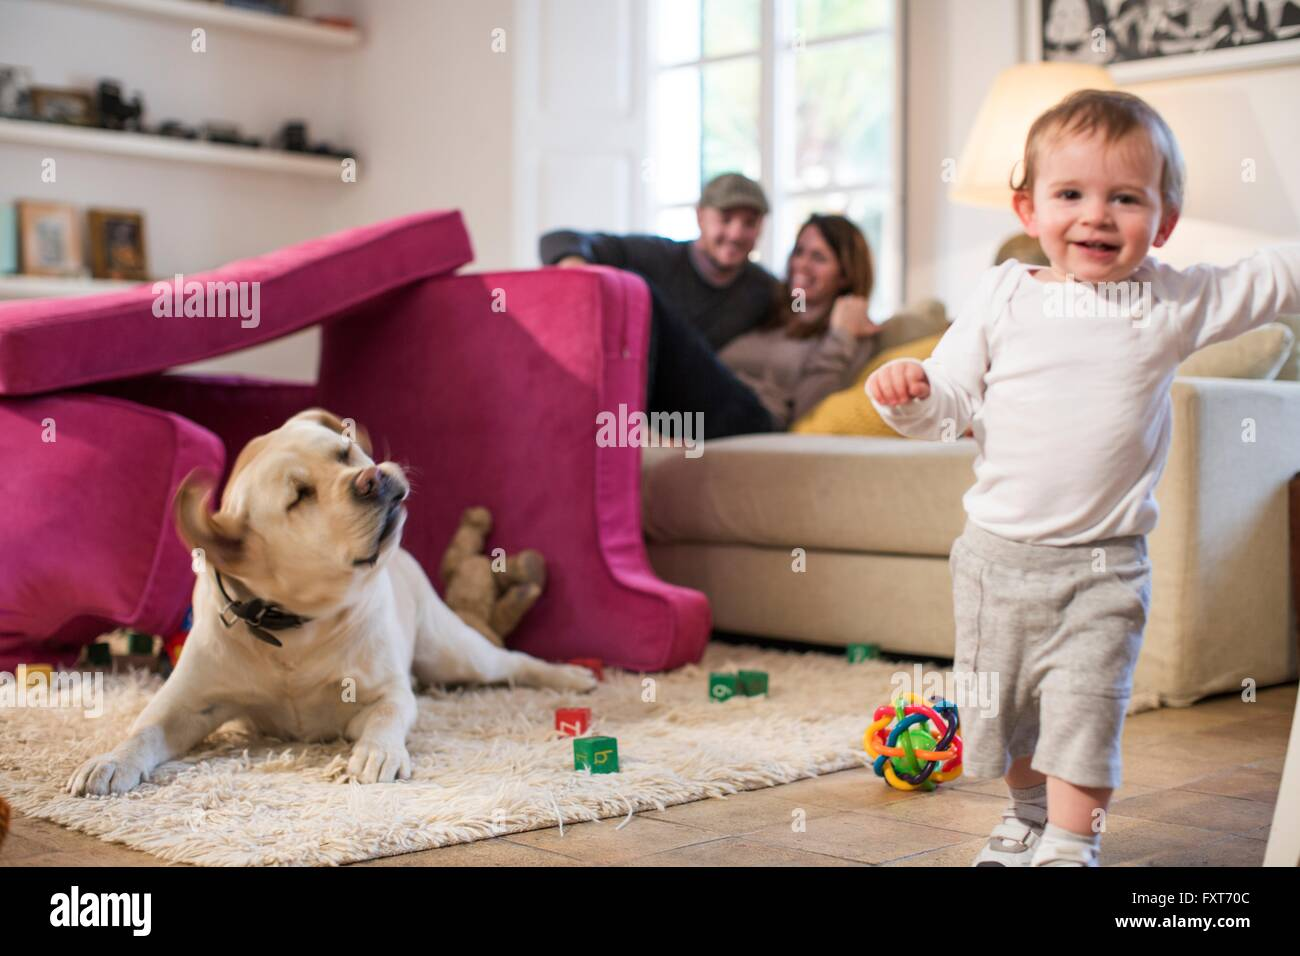 Baby boy and pet dog playing in fort made from sofa cushions, looking at camera smiling - Stock Image